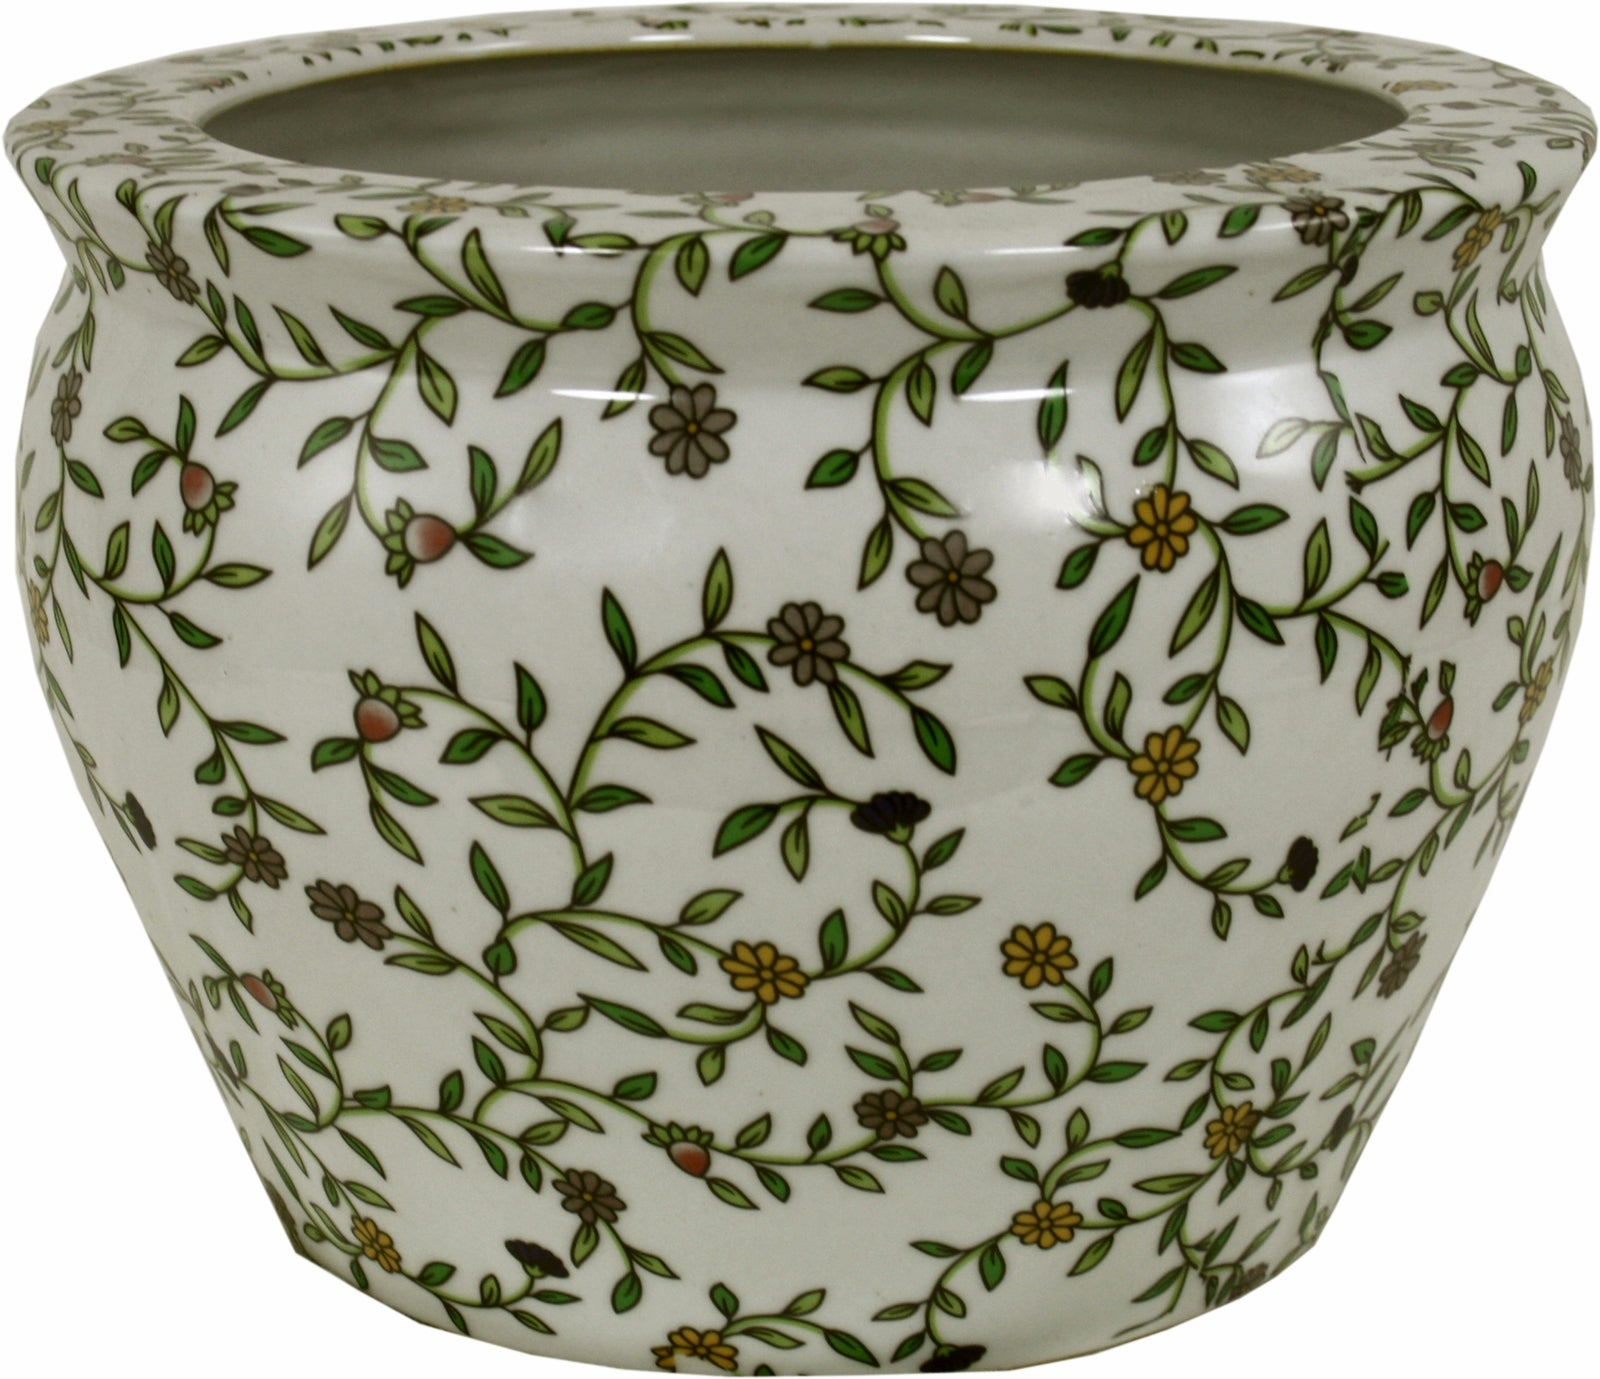 Ceramic Planter, Vintage Green & White Floral Design, Lawn & Garden by Low Cost Gifts